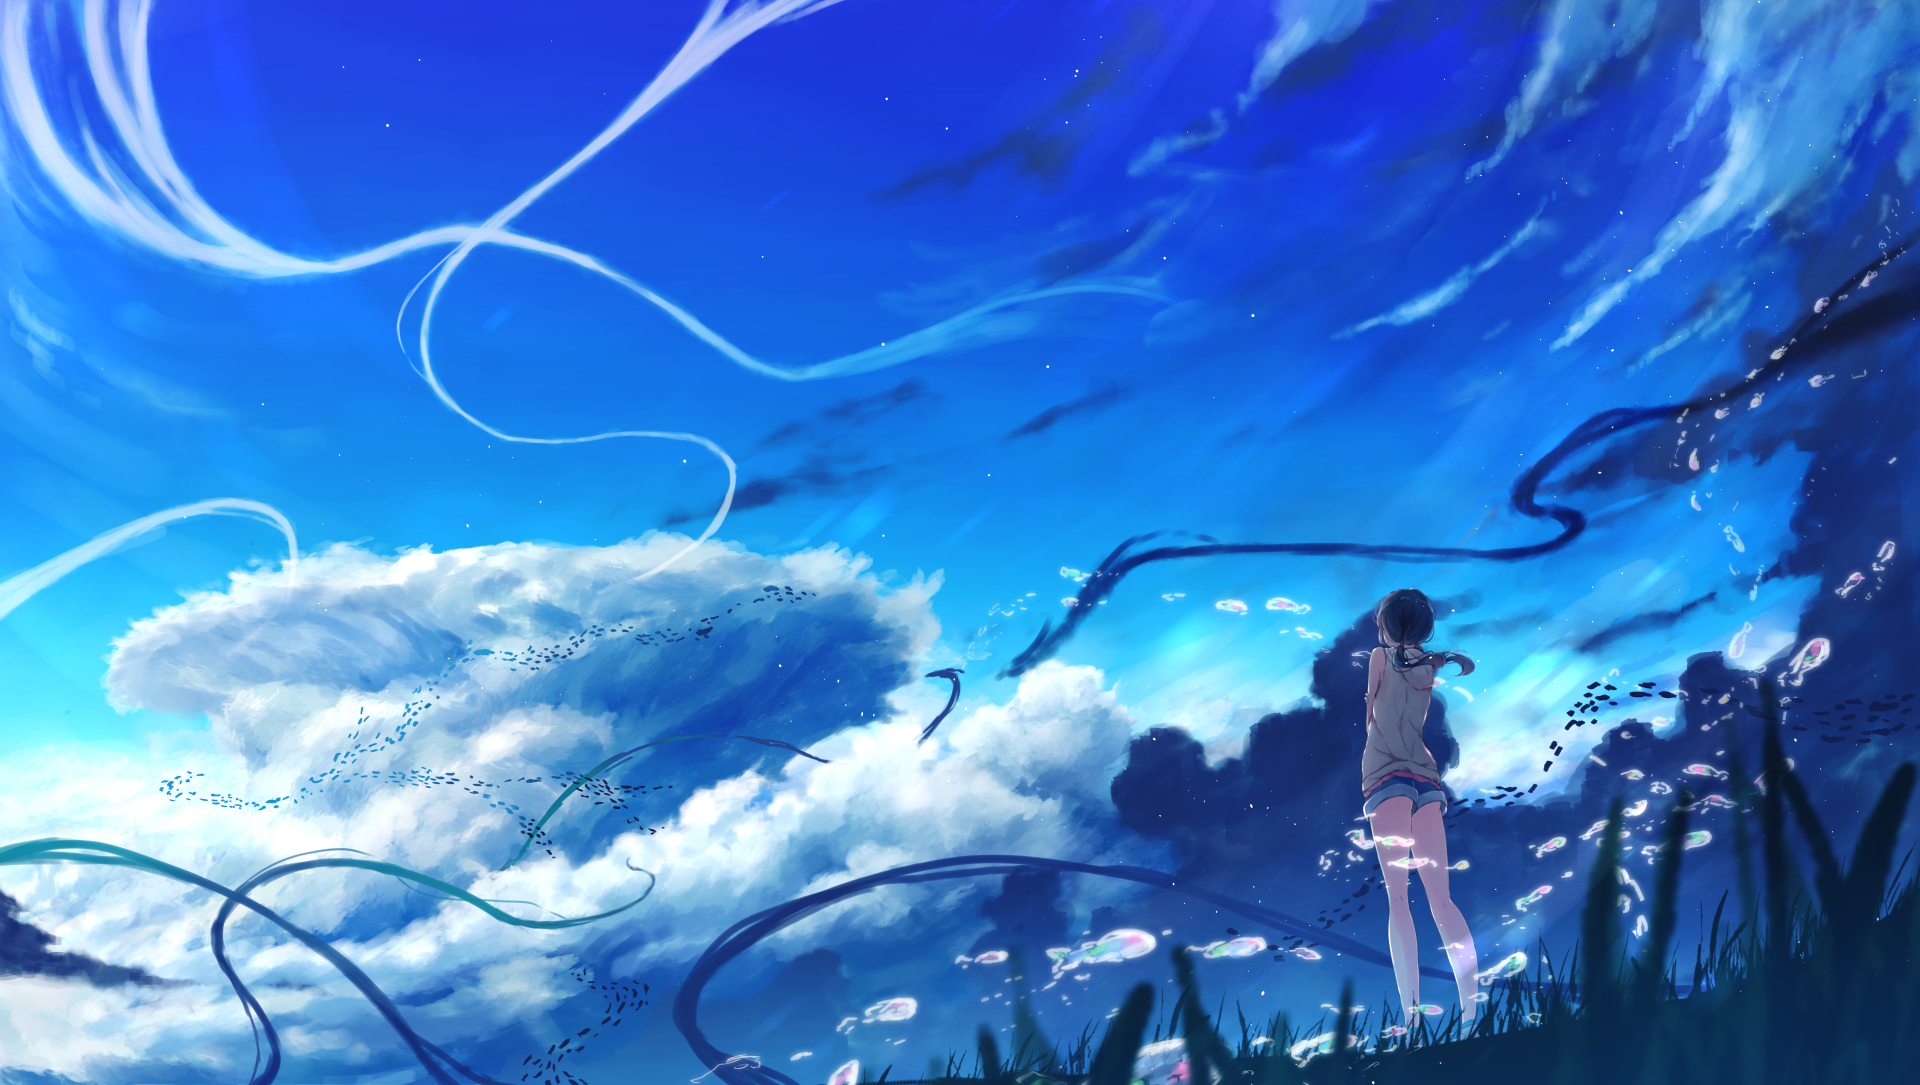 Wallpapers ID:1081600